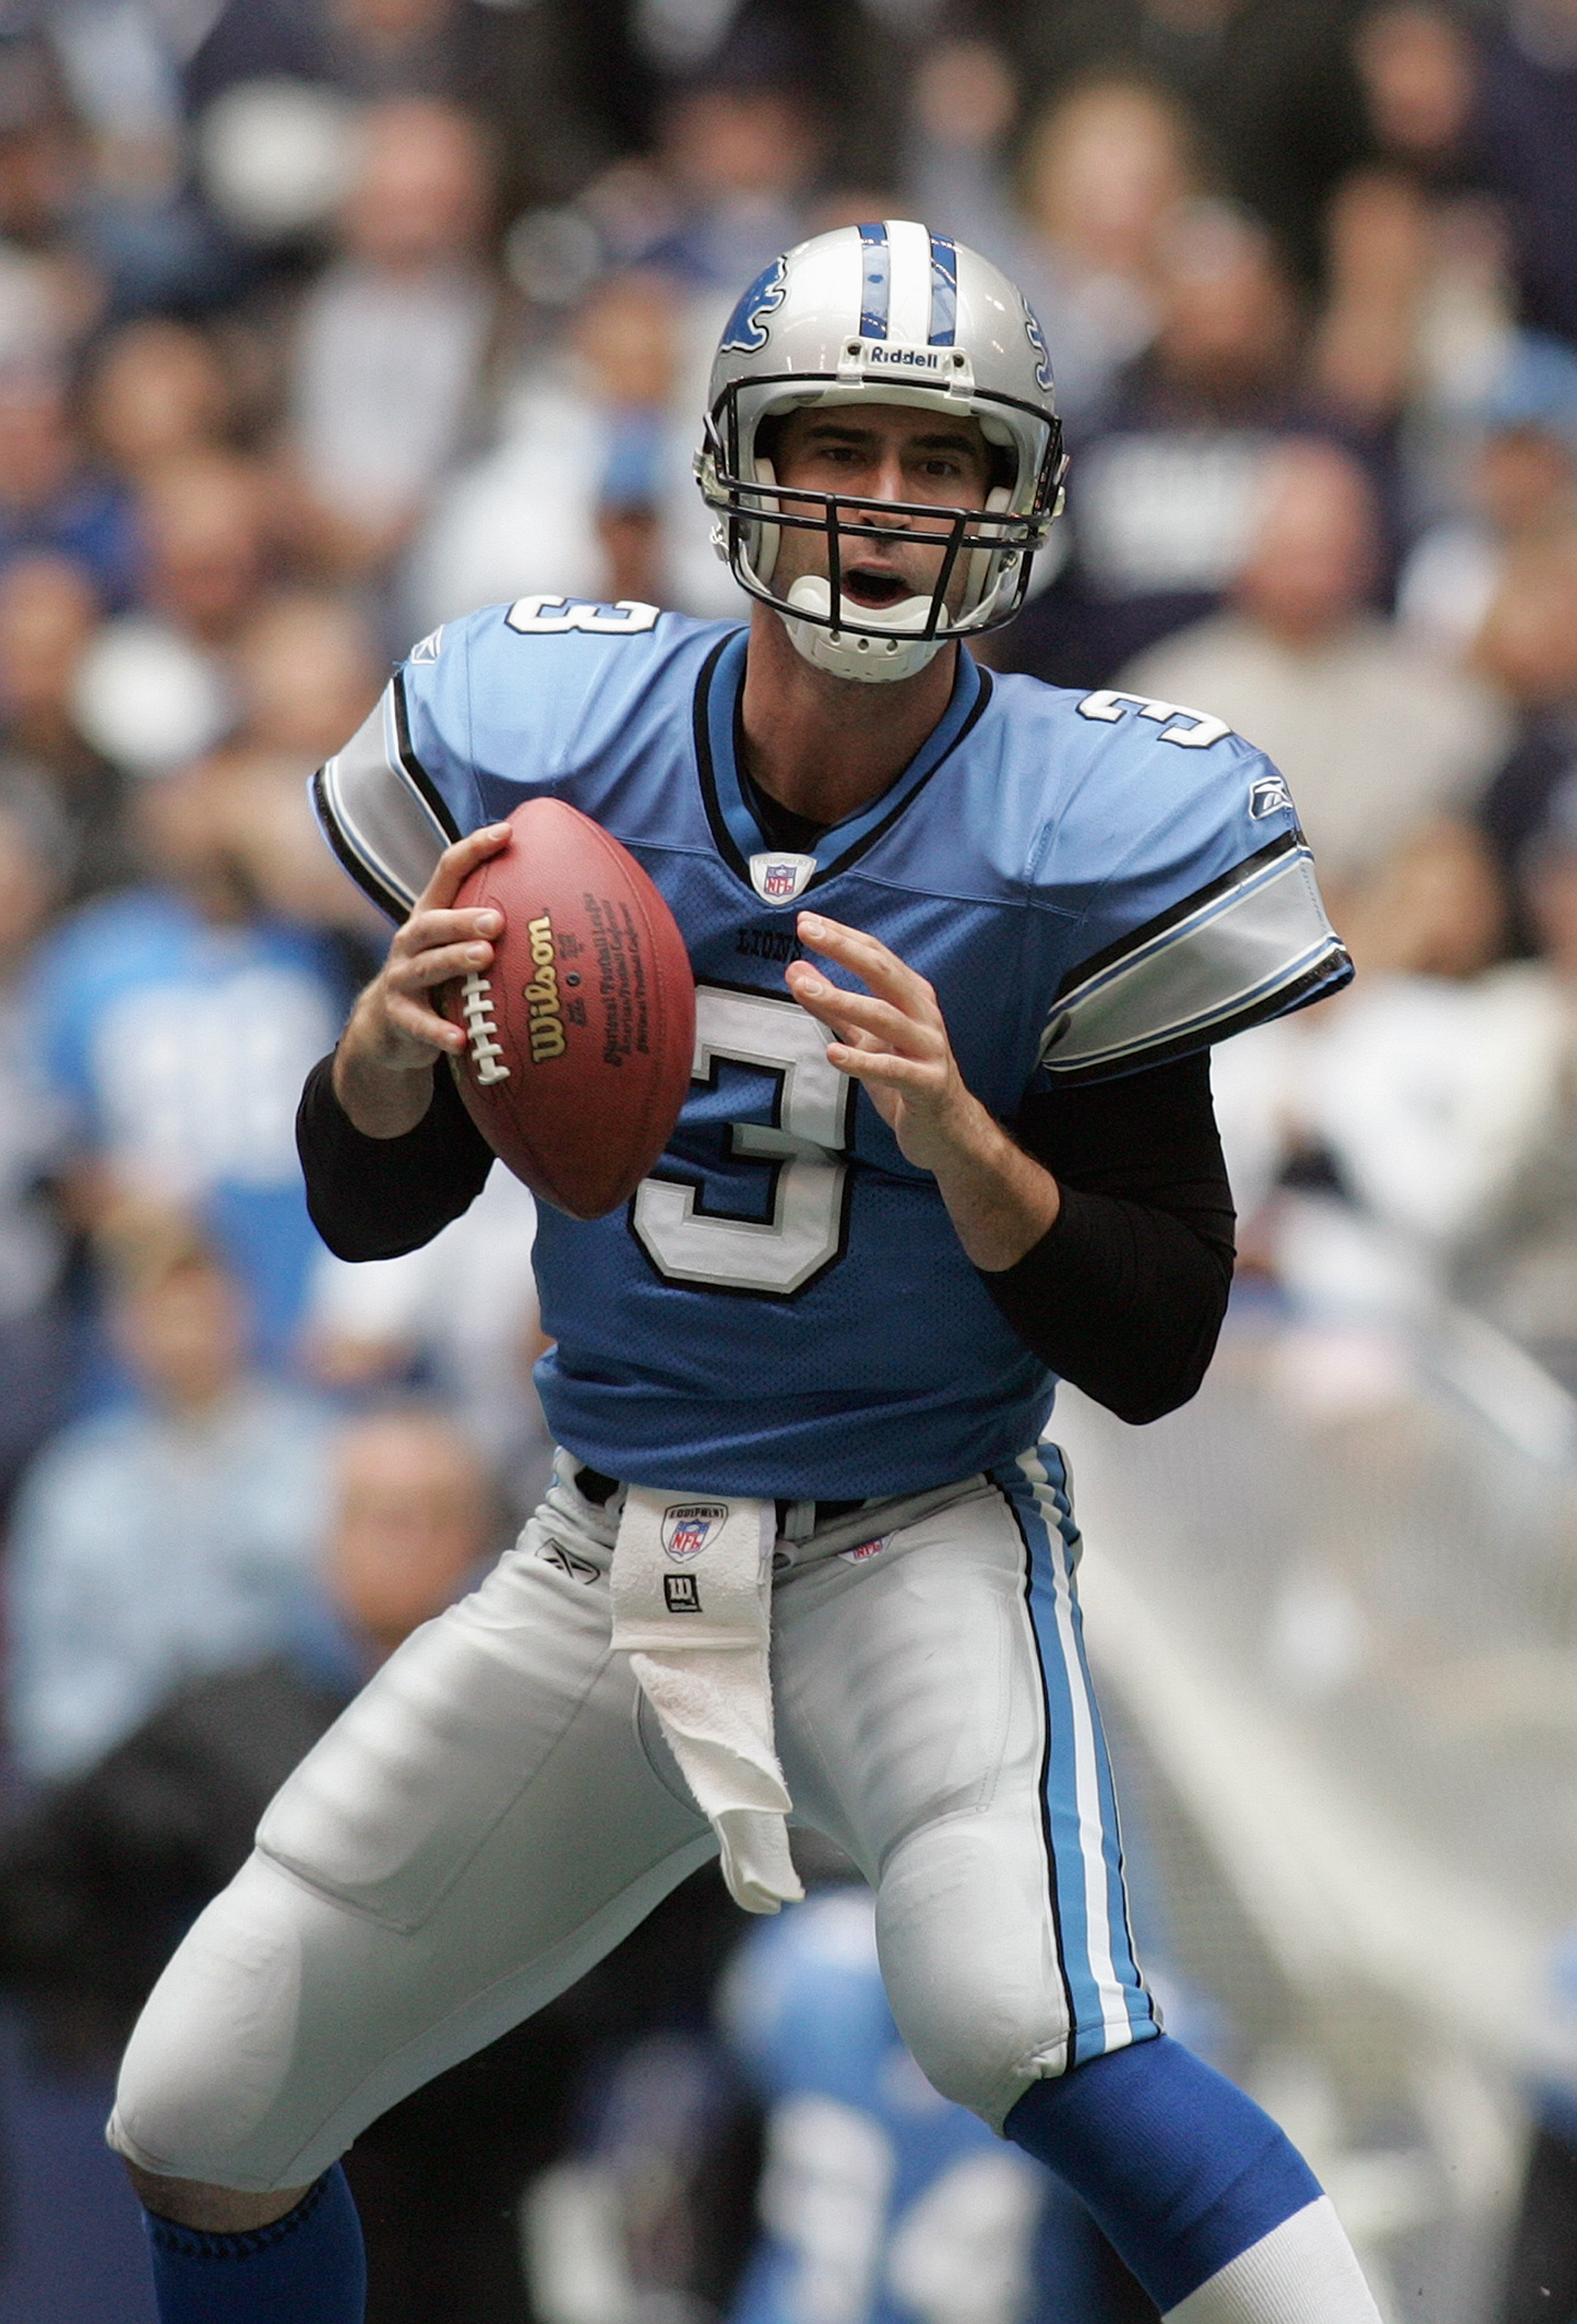 IRVING, TX - NOVEMBER 20:  Quarterback Joey Harrington #3 of the Detroit Lions drops back to pass during their game against the Dallas Cowboys on November 20, 2005 at Texas Stadium in Irving, Texas.  The Cowboys defeated the Lions 20-7.  (Photo by Ronald